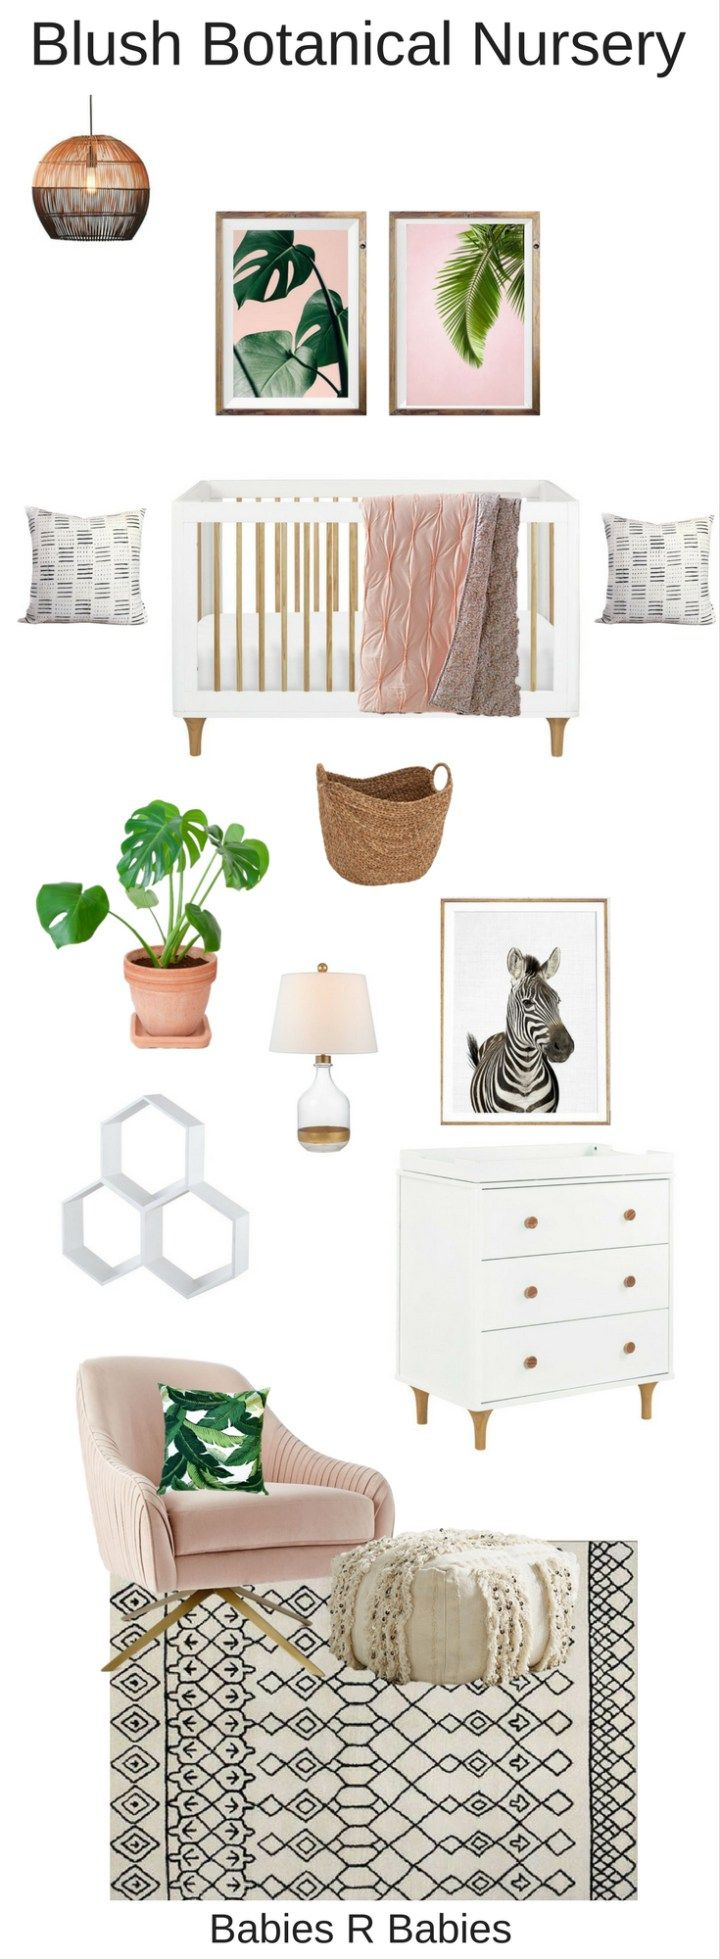 Blush Botanical Nursery with Tropical Prints and natural textures.